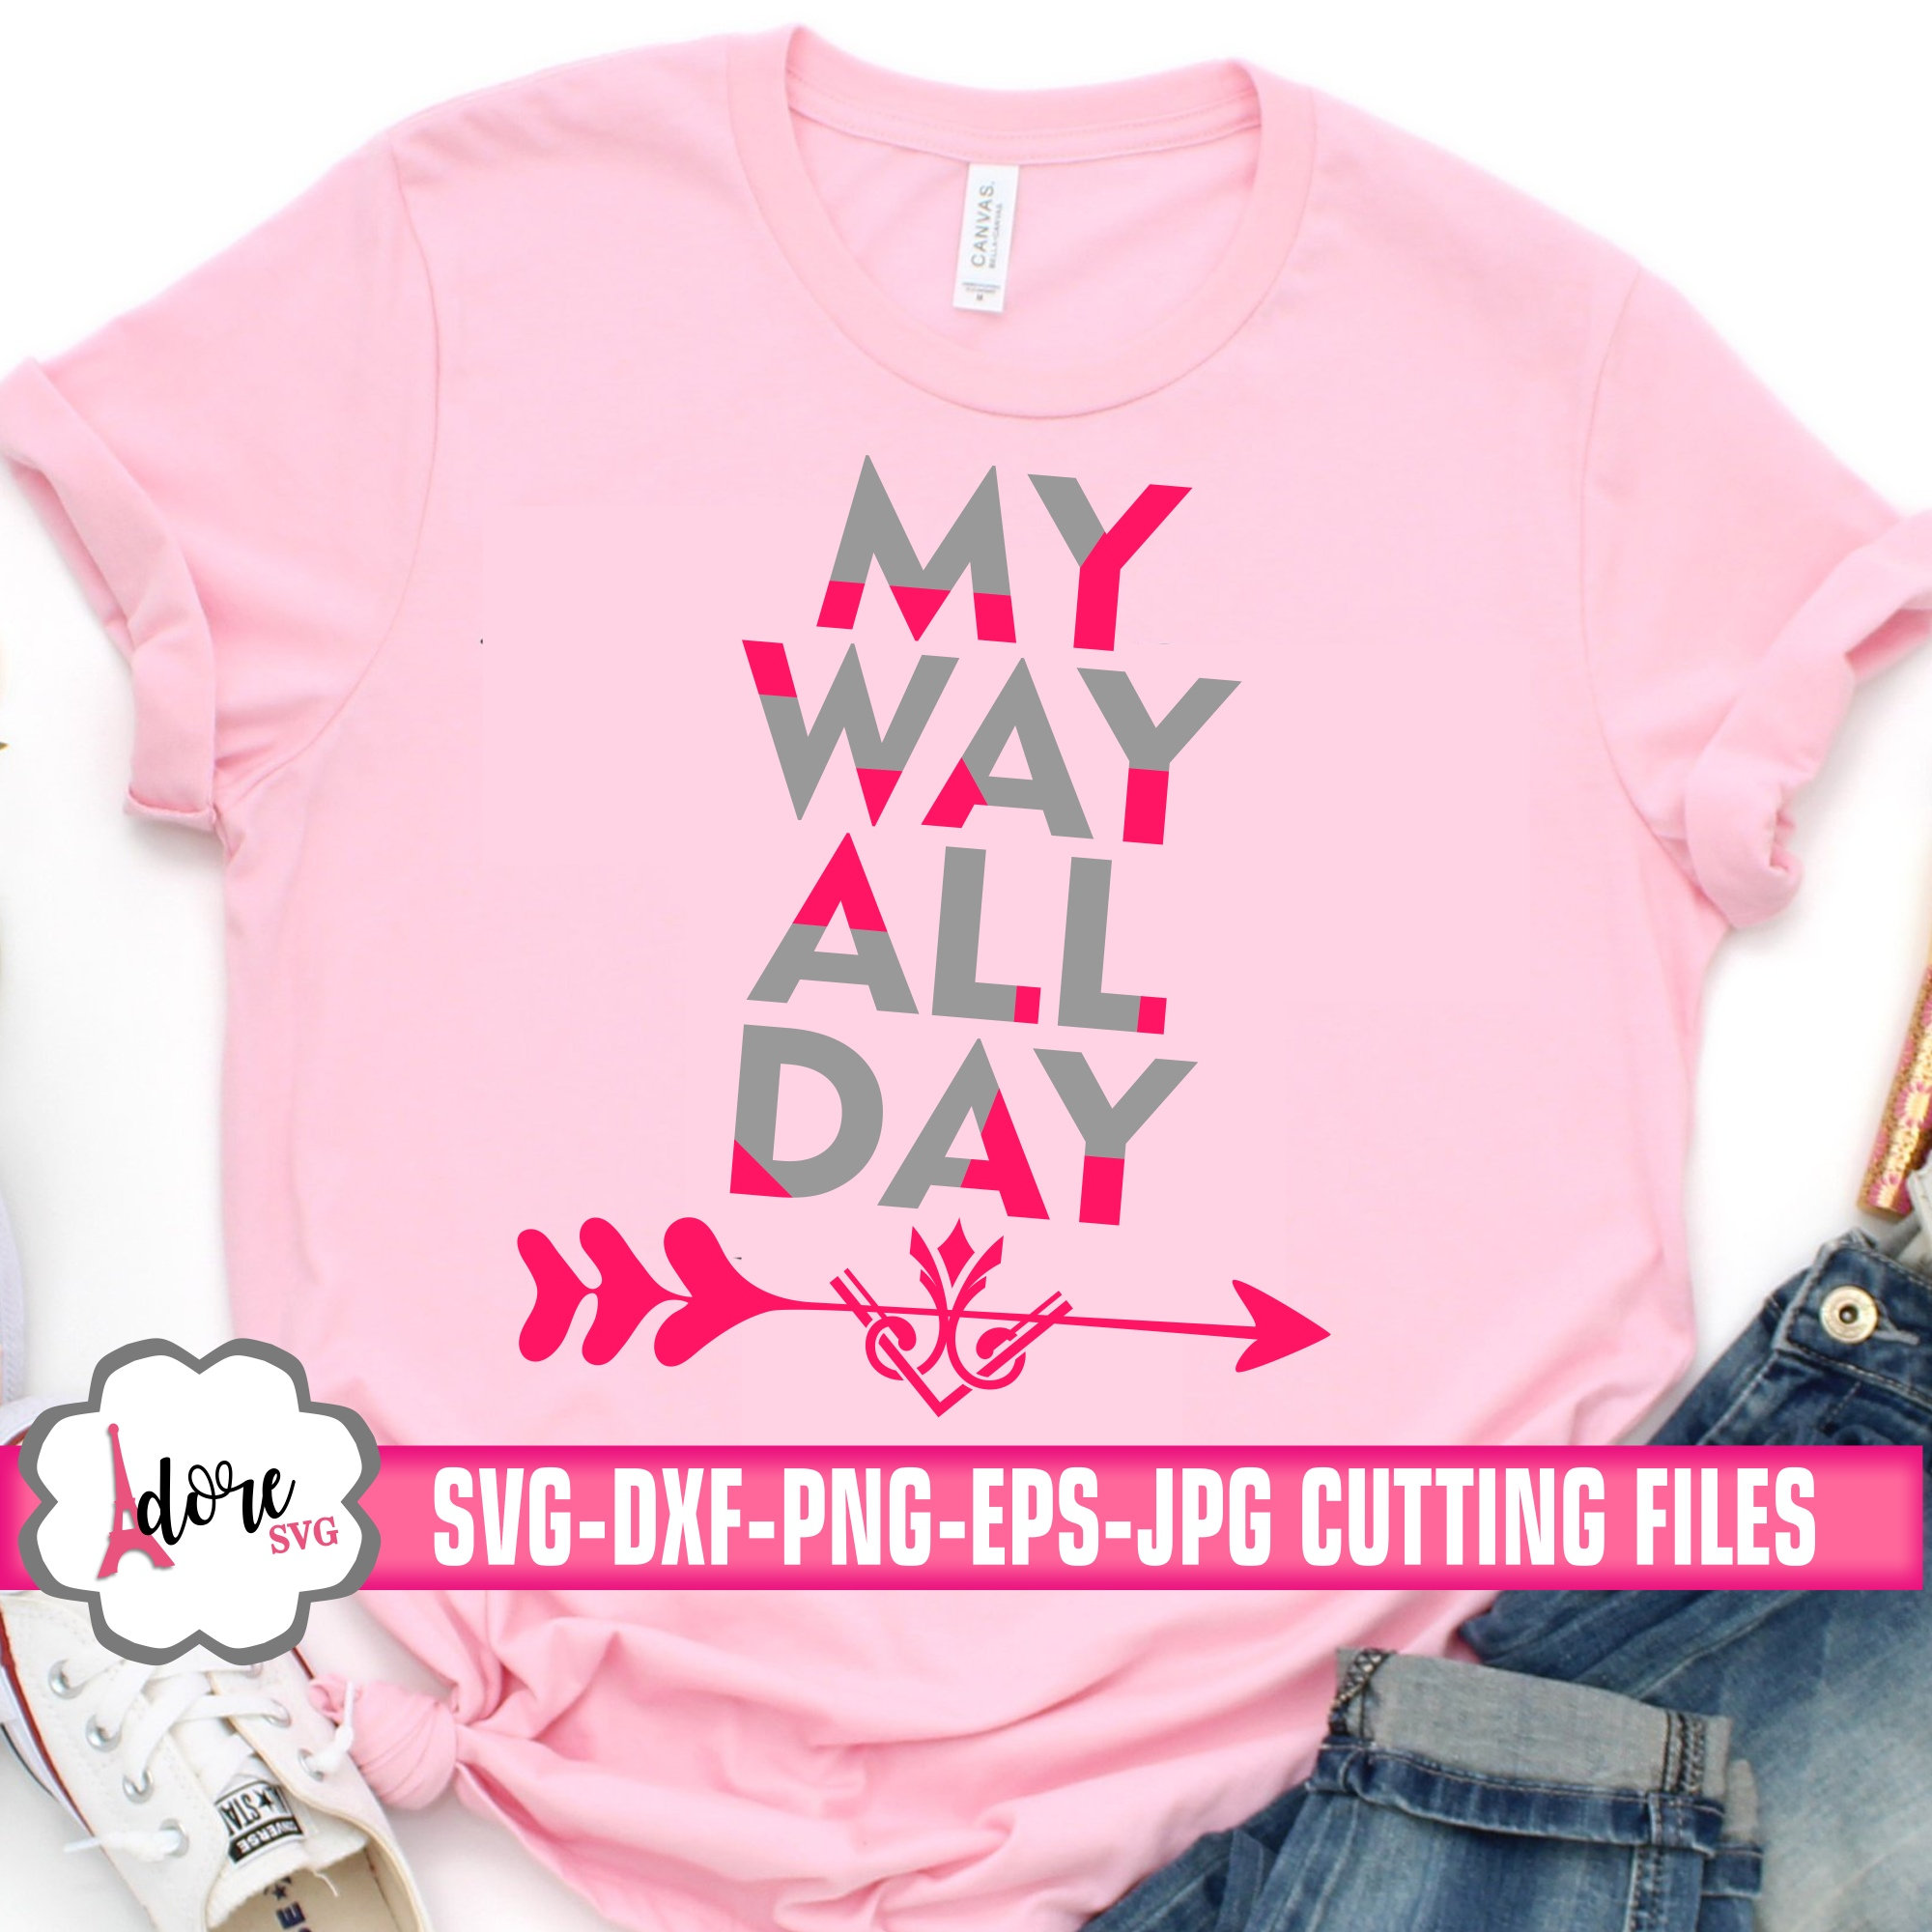 My Way All Day Svg Arrow Svg My Way Svg Kids Svg Cricut Design Silhouette Design Silhouette Tshirt Cameo Svg For Cricut Mom Svg Teacher Svg Svg For Cricut